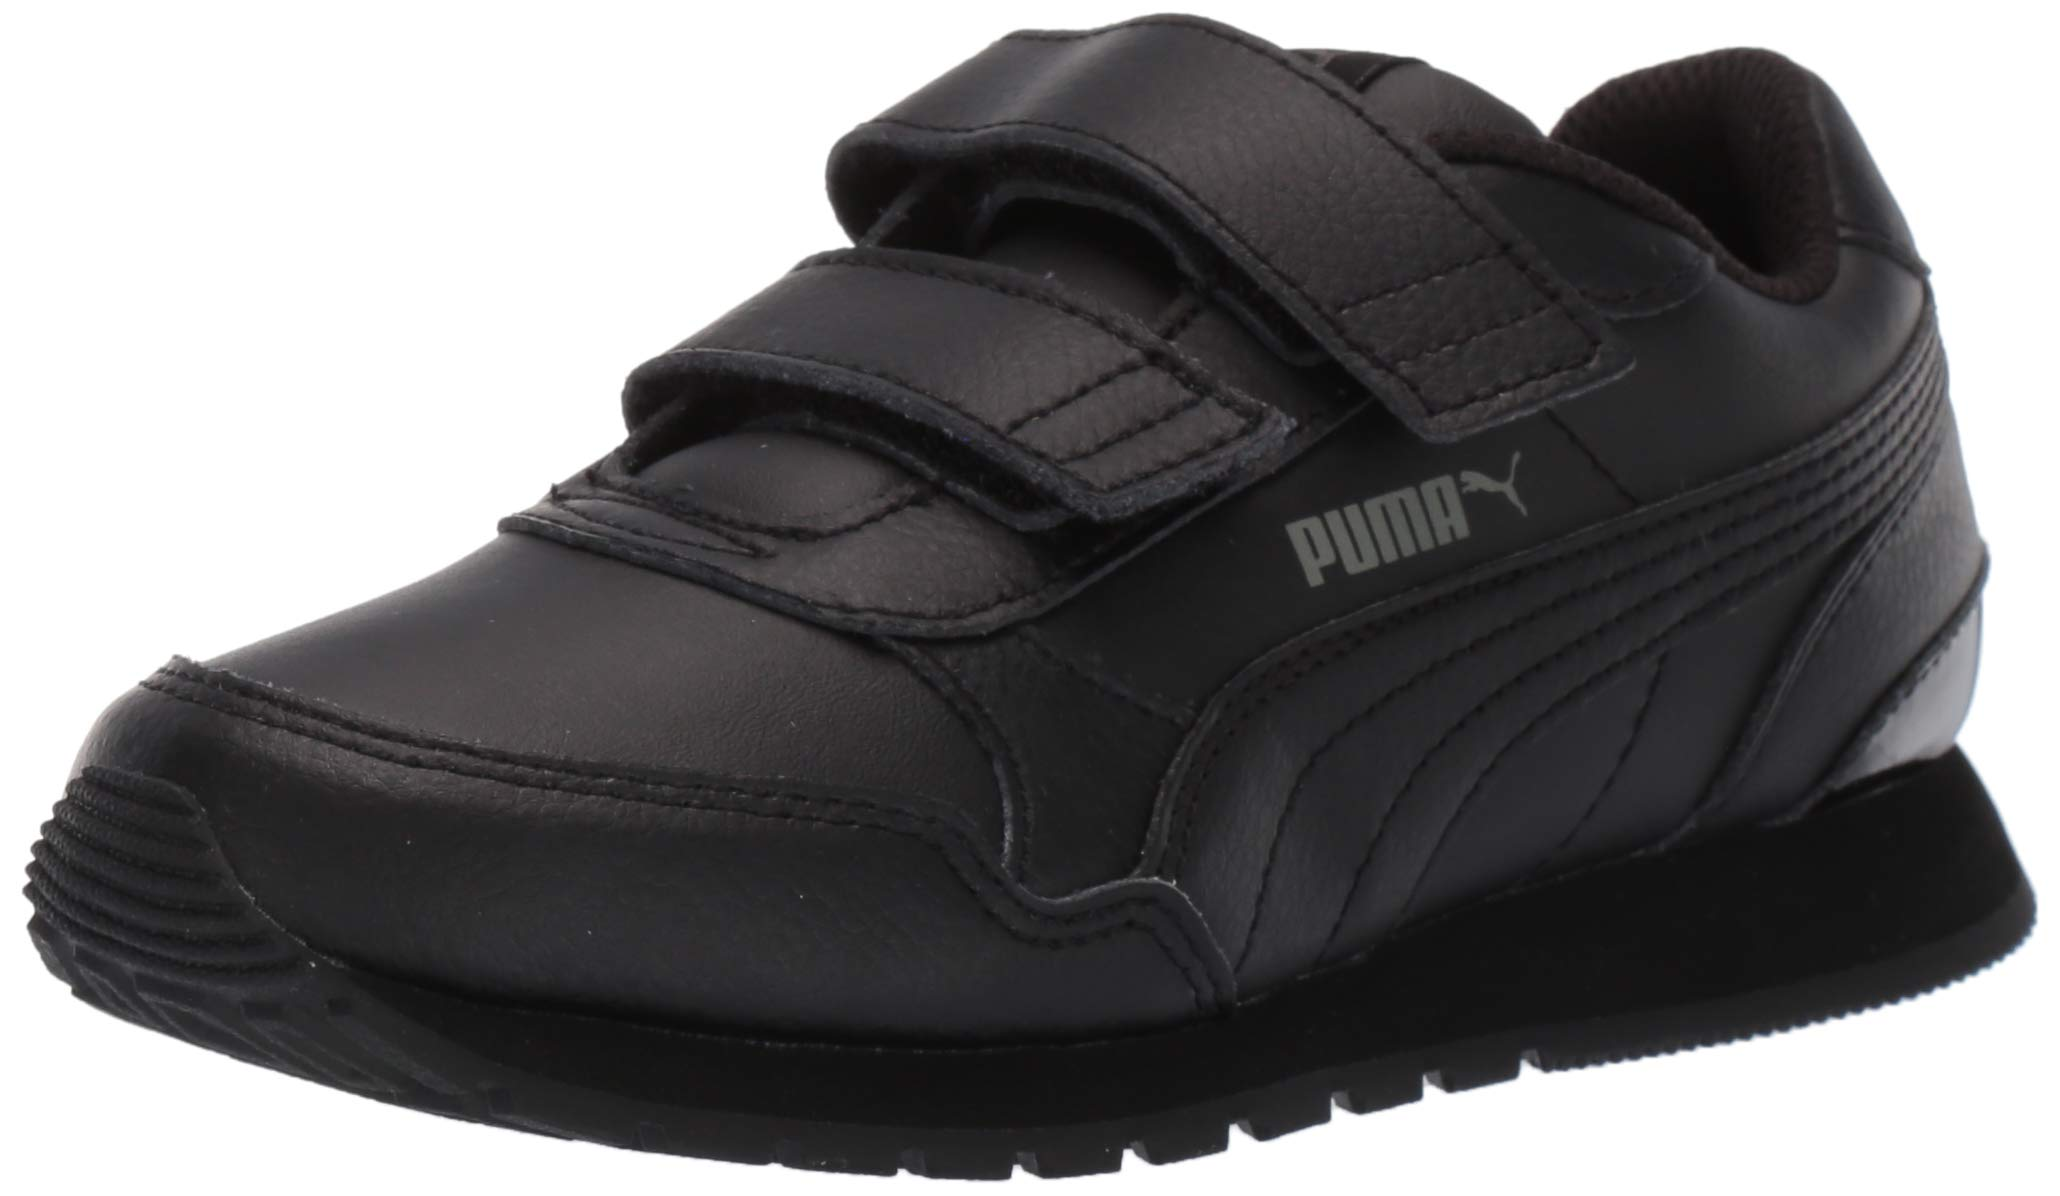 PUMA ST Runner V2 Velcro Sneaker Black-Dark Shadow, 13.5 M US Little Kid